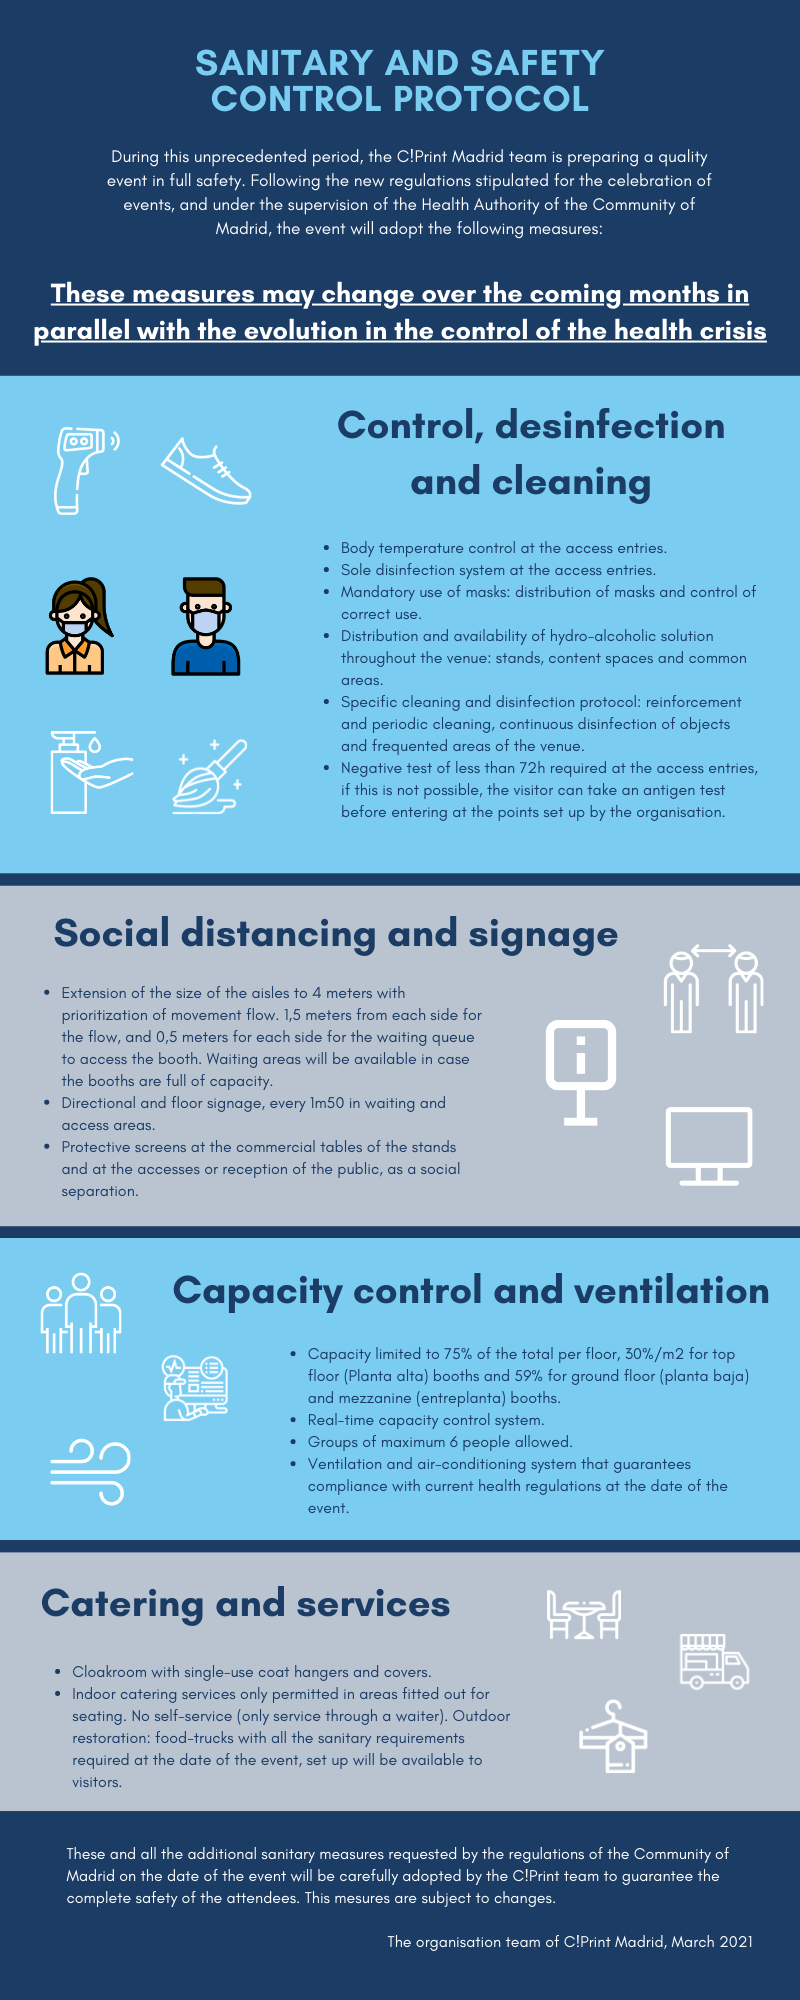 SANITARY AND SAFETY CONTROL PROTOCOL